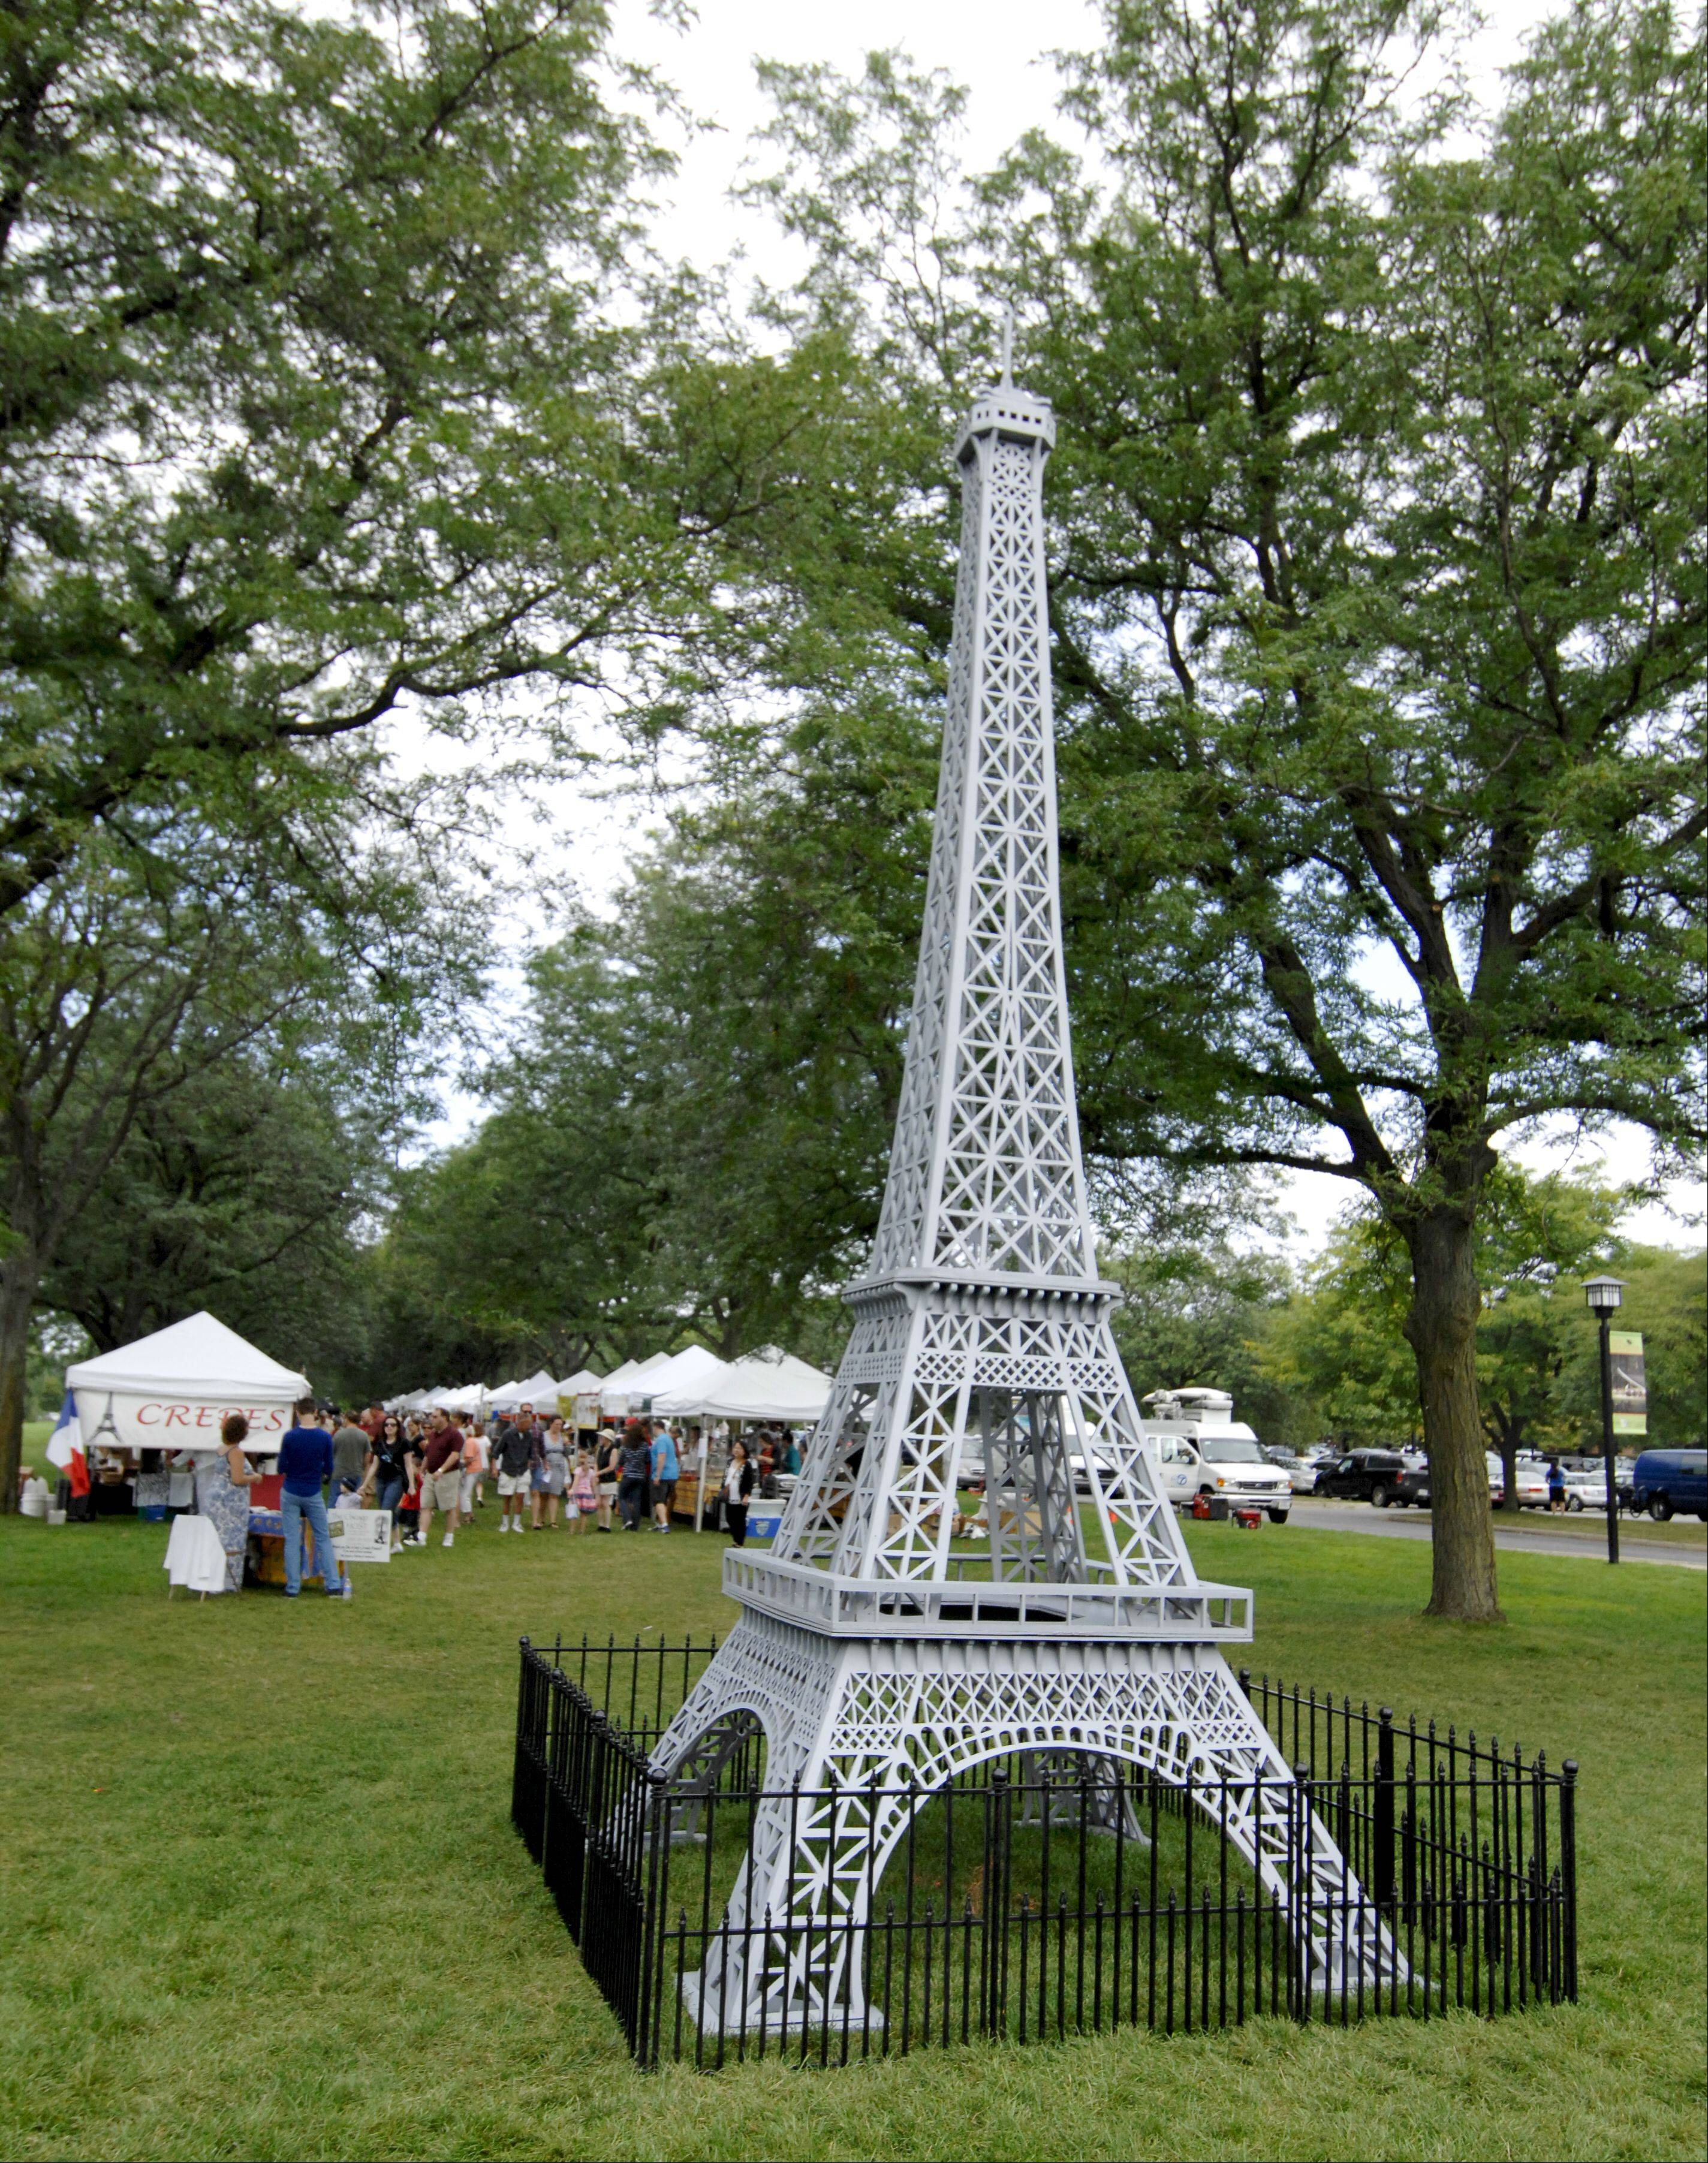 French Connection Day at Cantigny Park in Wheaton included a 23-foot Eiffel Tower where visitors could pose for photos.